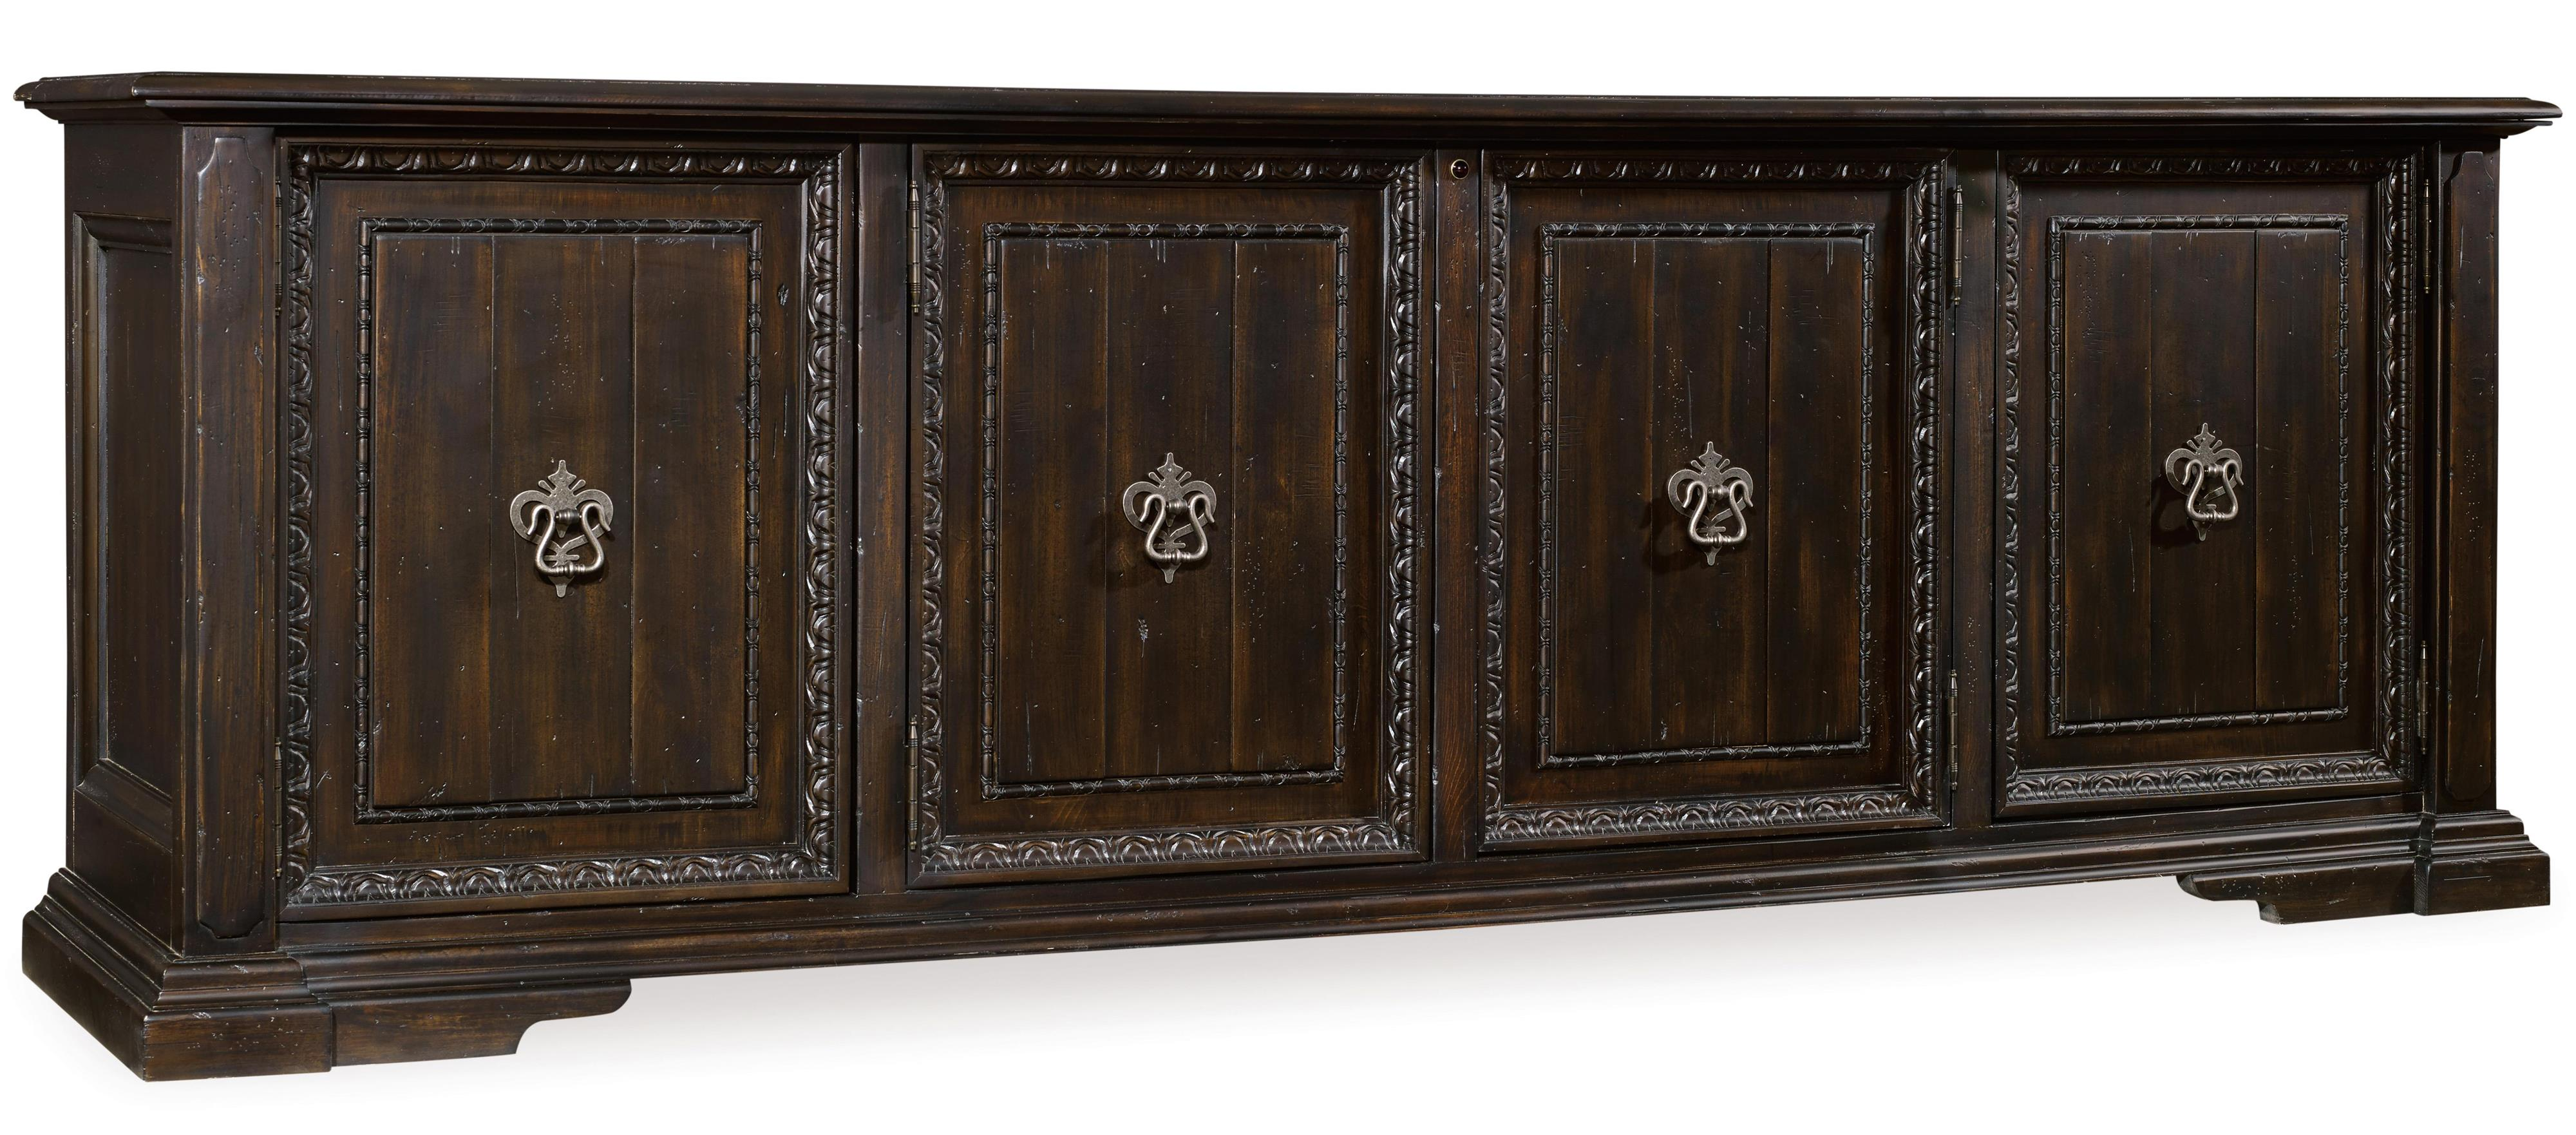 Hooker Furniture Treviso Entertainment Console - Item Number: 5374-55494